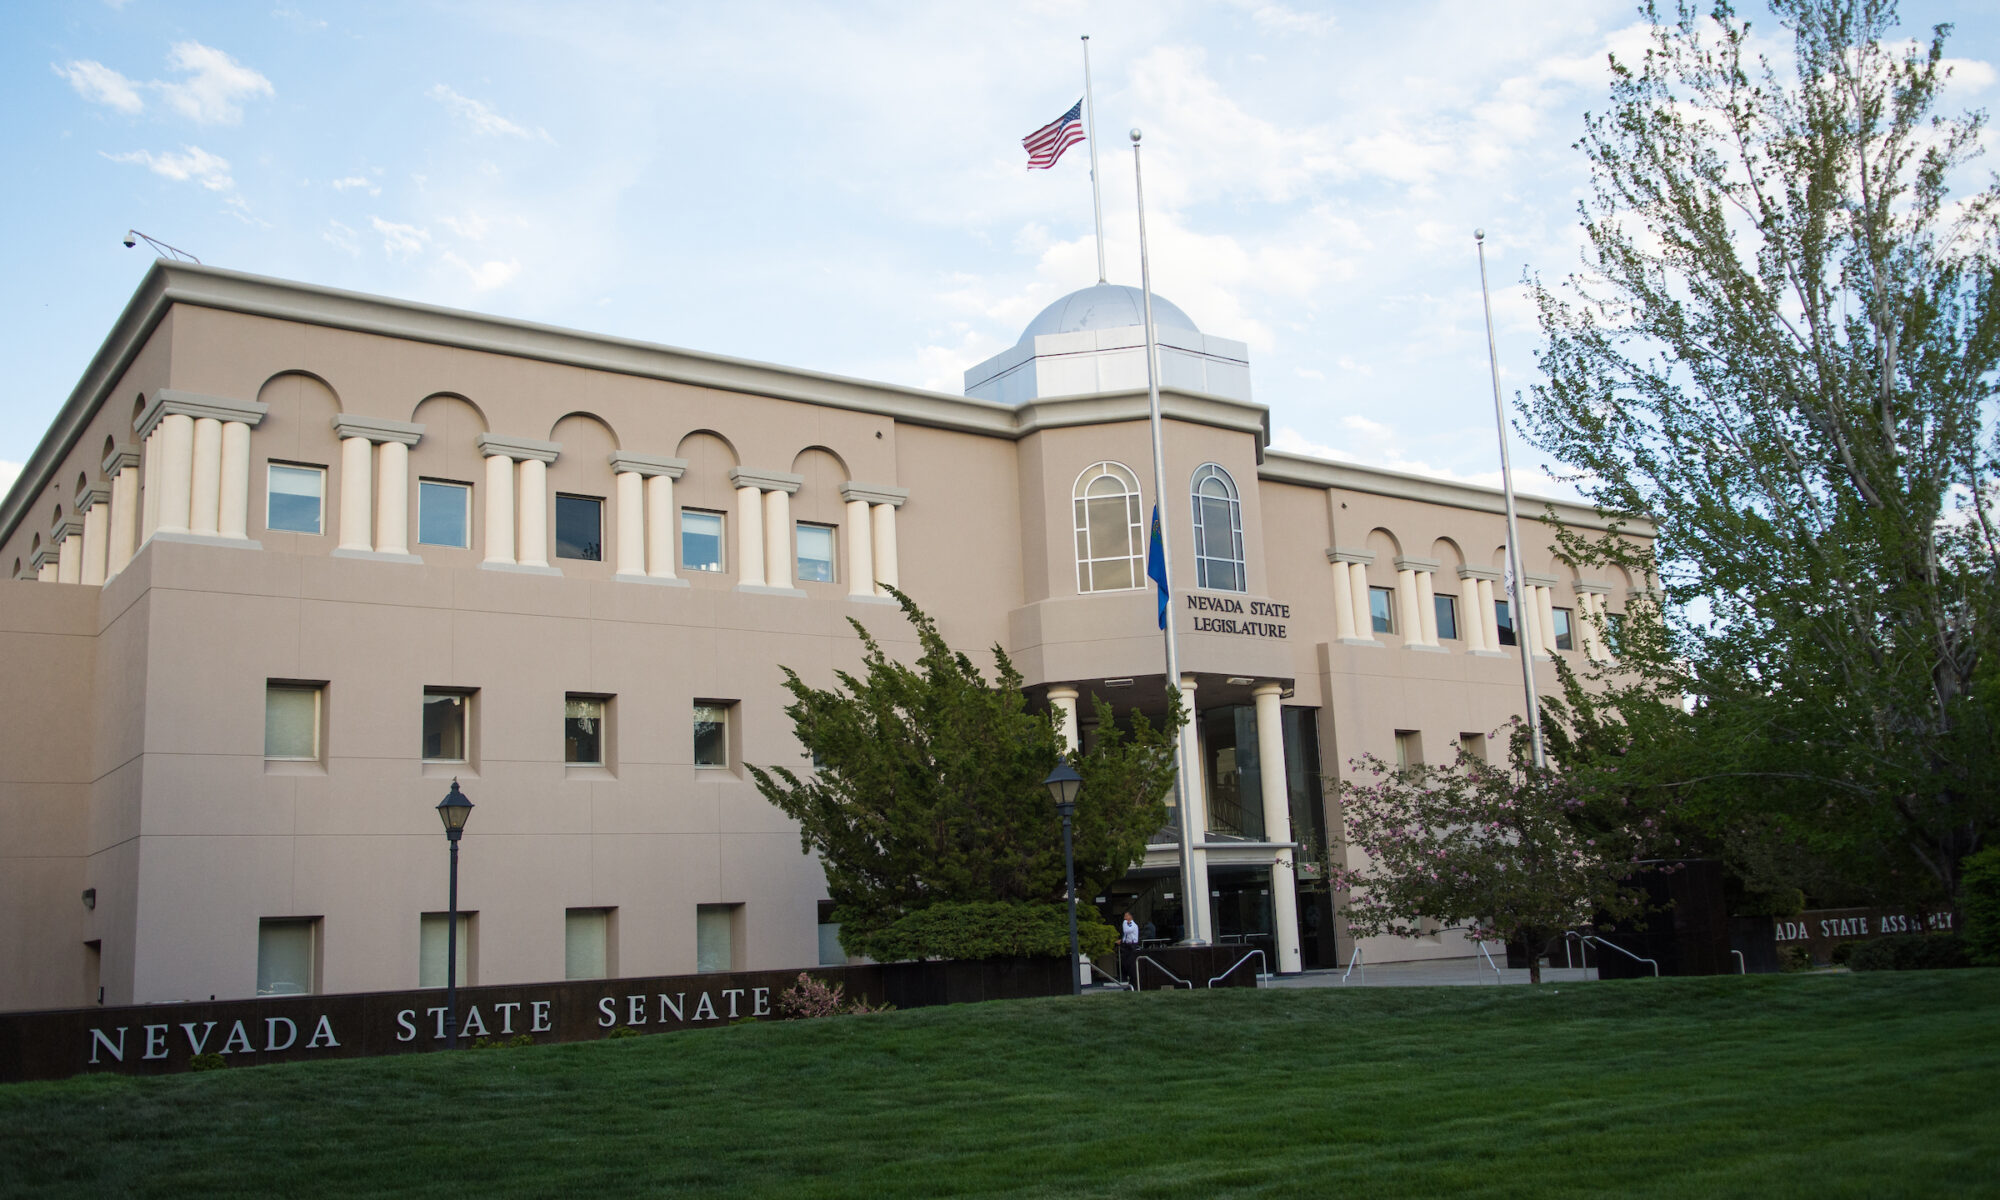 Photo of the front of the Nevada Legislature building.